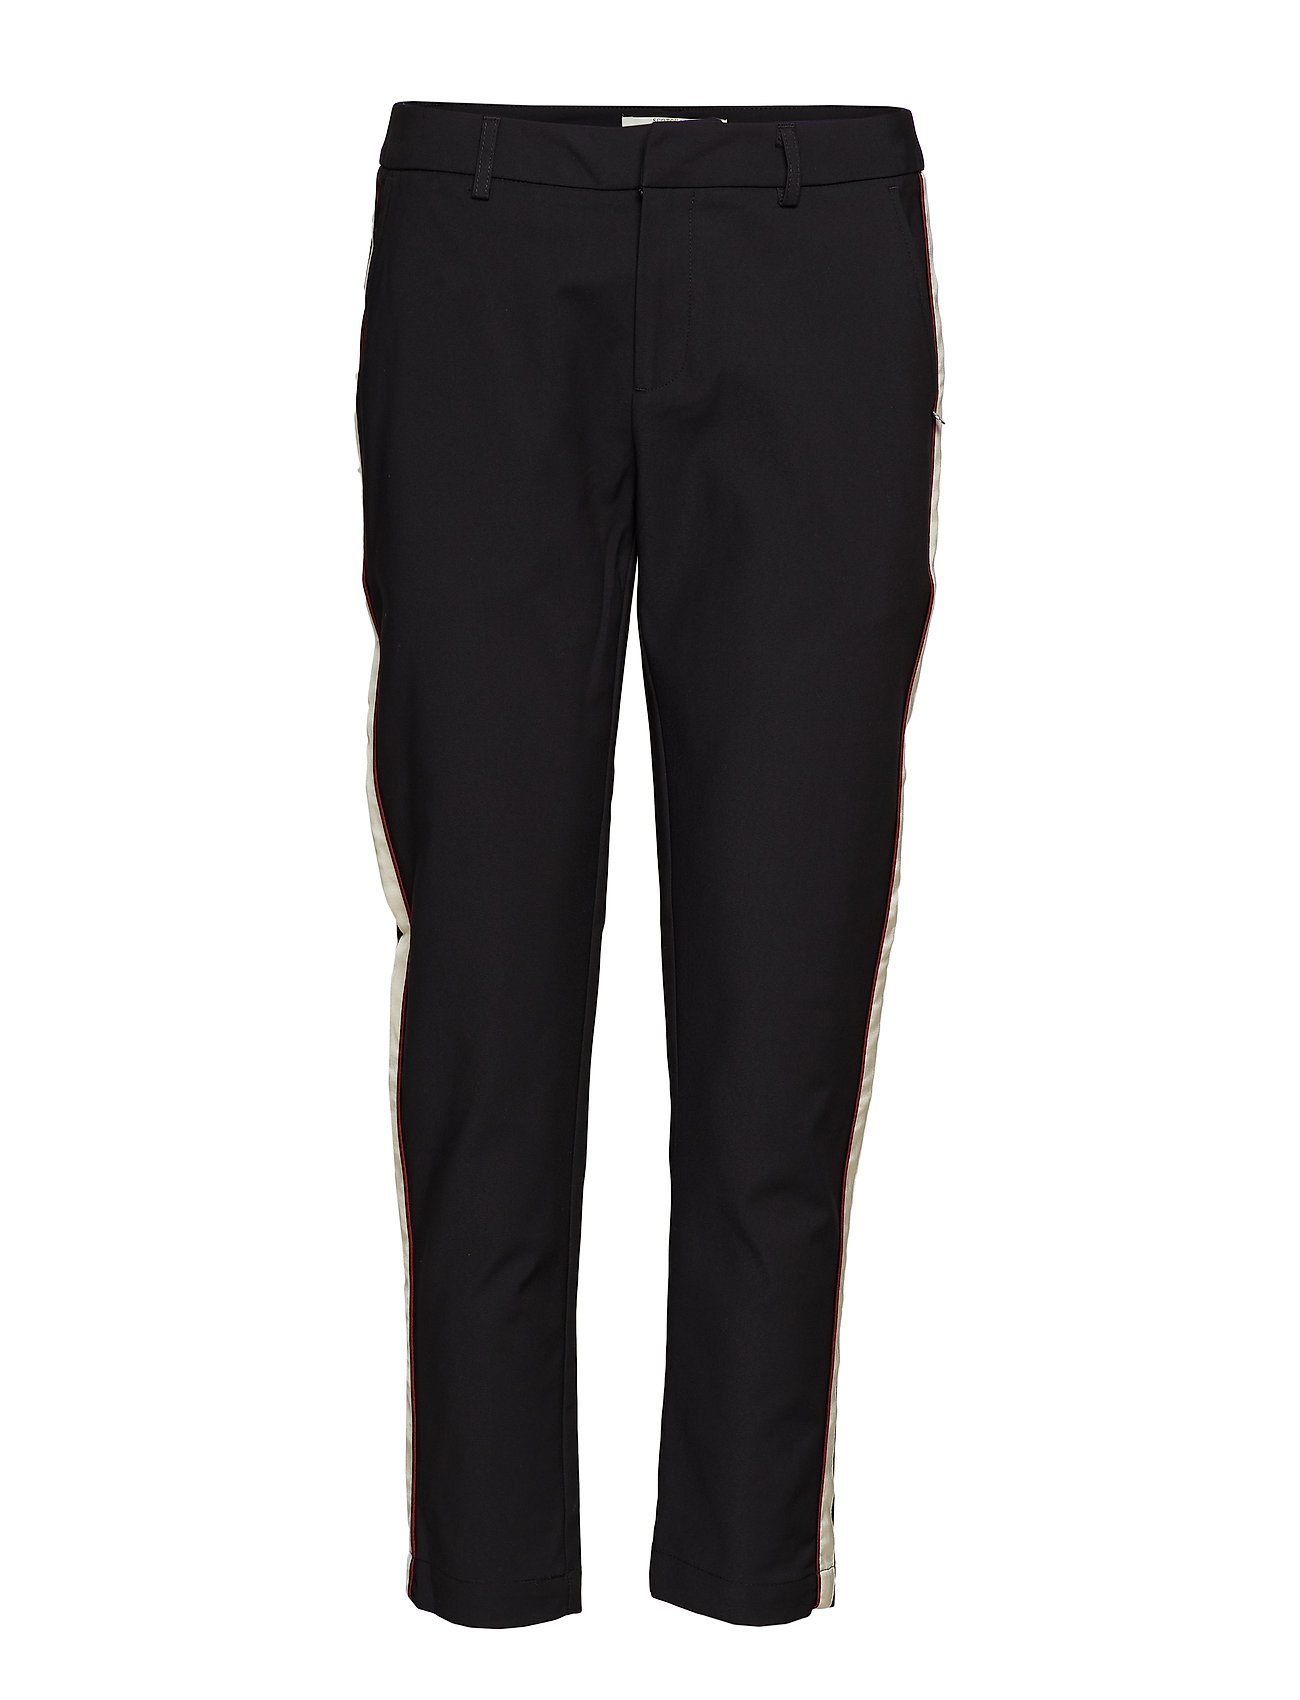 Scotch & Soda Tailored stretch pants with contrast side panel - BLACK